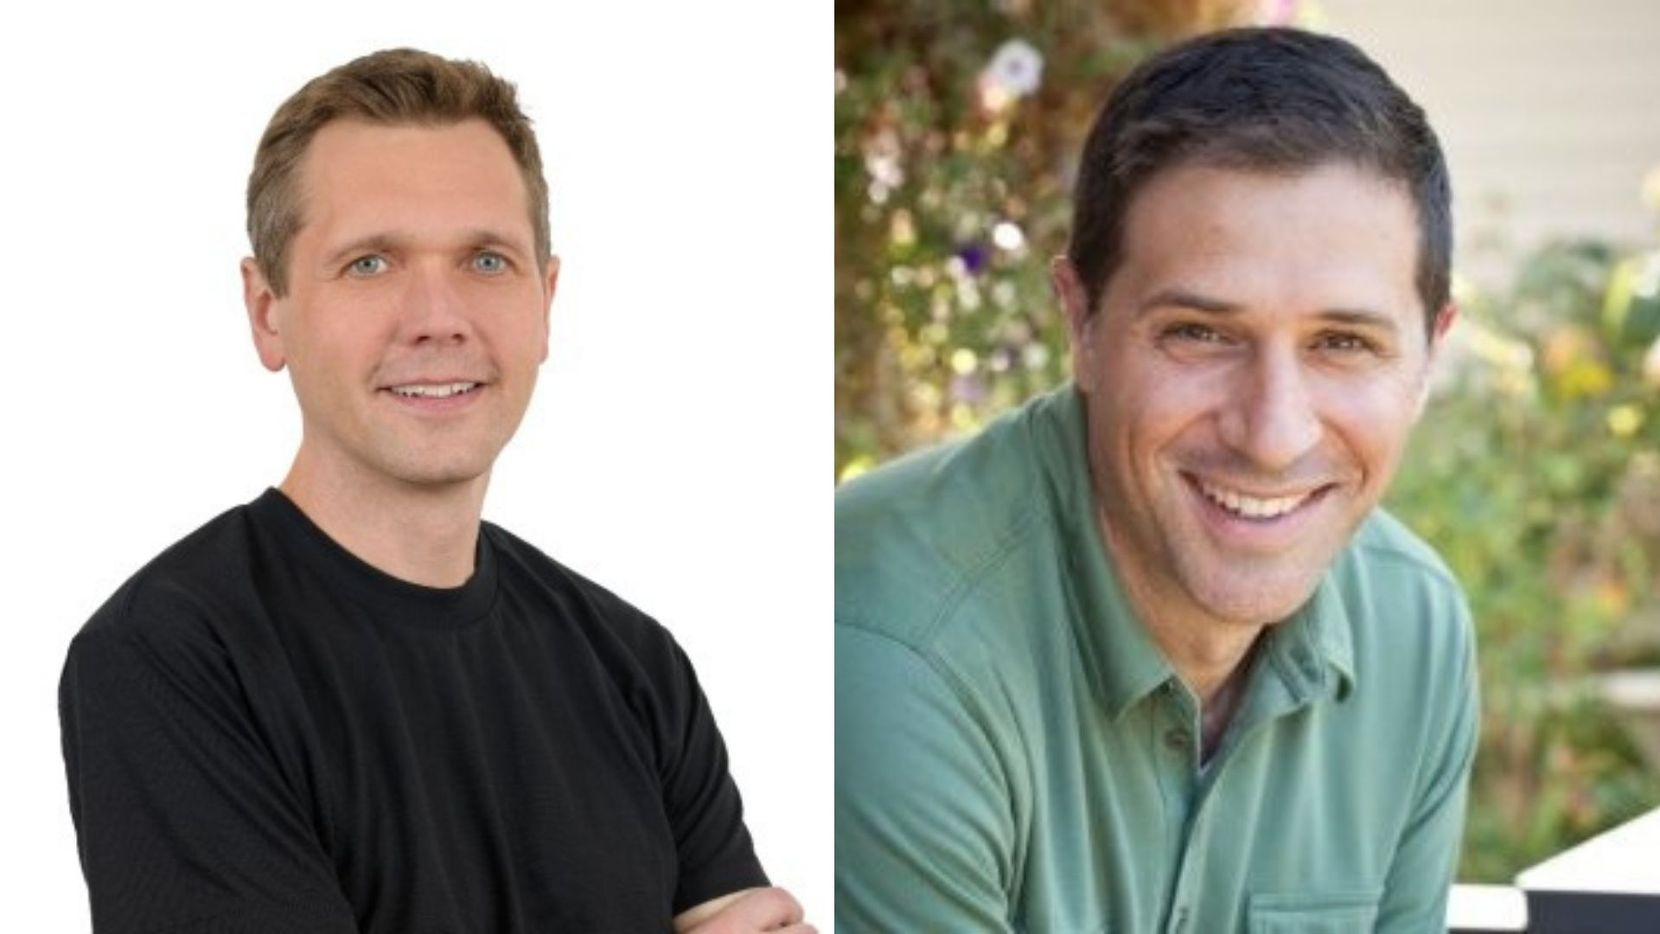 GameStop appointed Matt Furlong (left) its new CEO and Mike Recupero its new CFO on Wednesday.